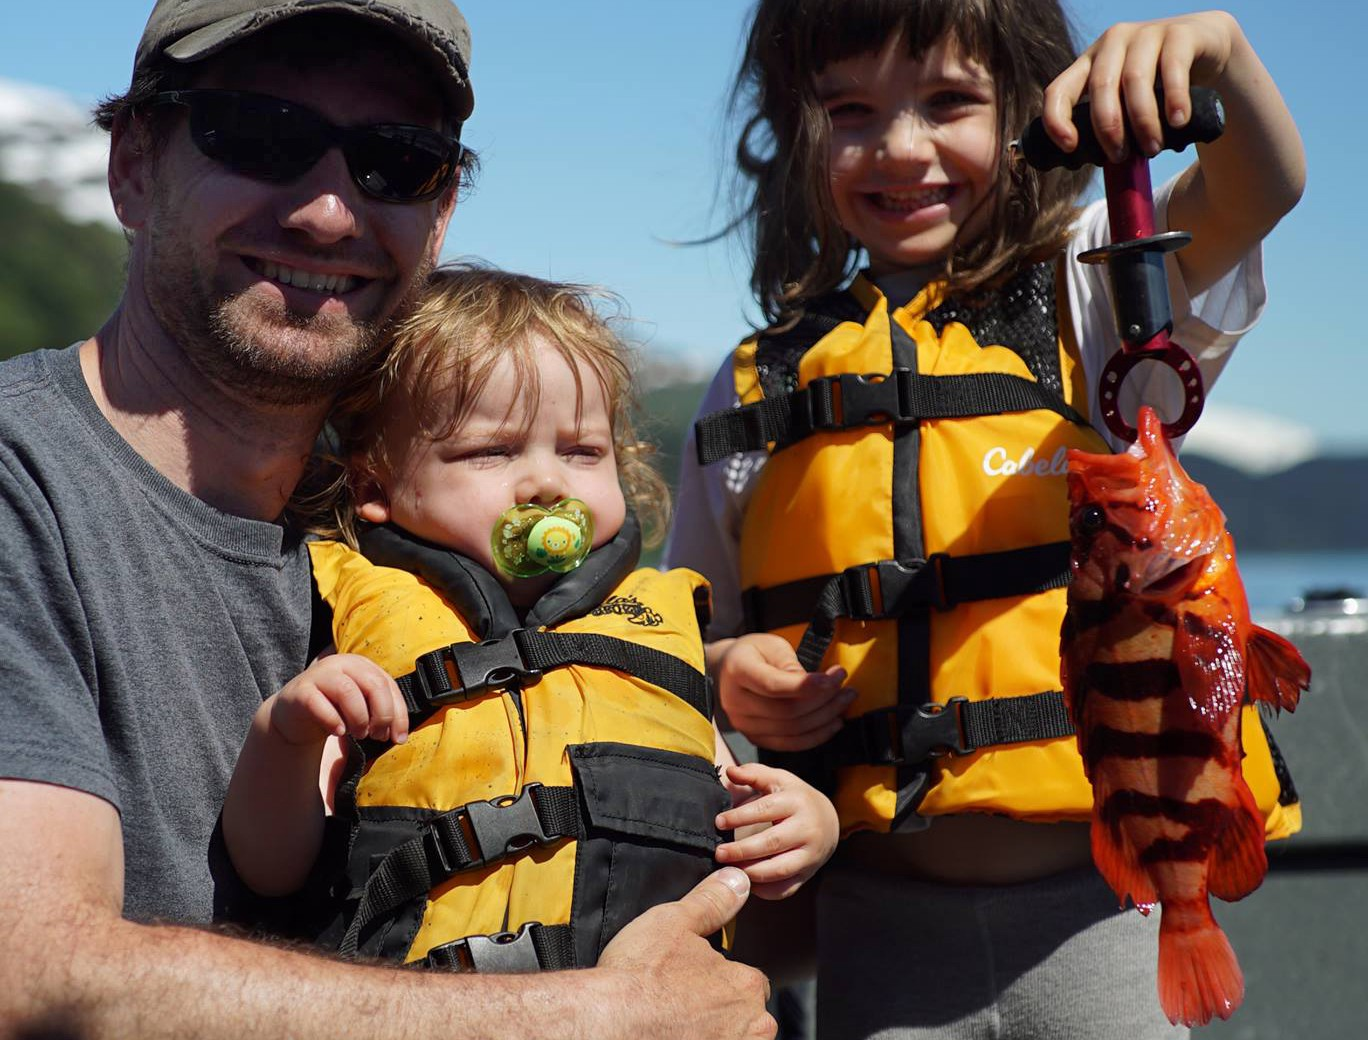 young girl holding a striped orange rockfish with her baby brother and dad